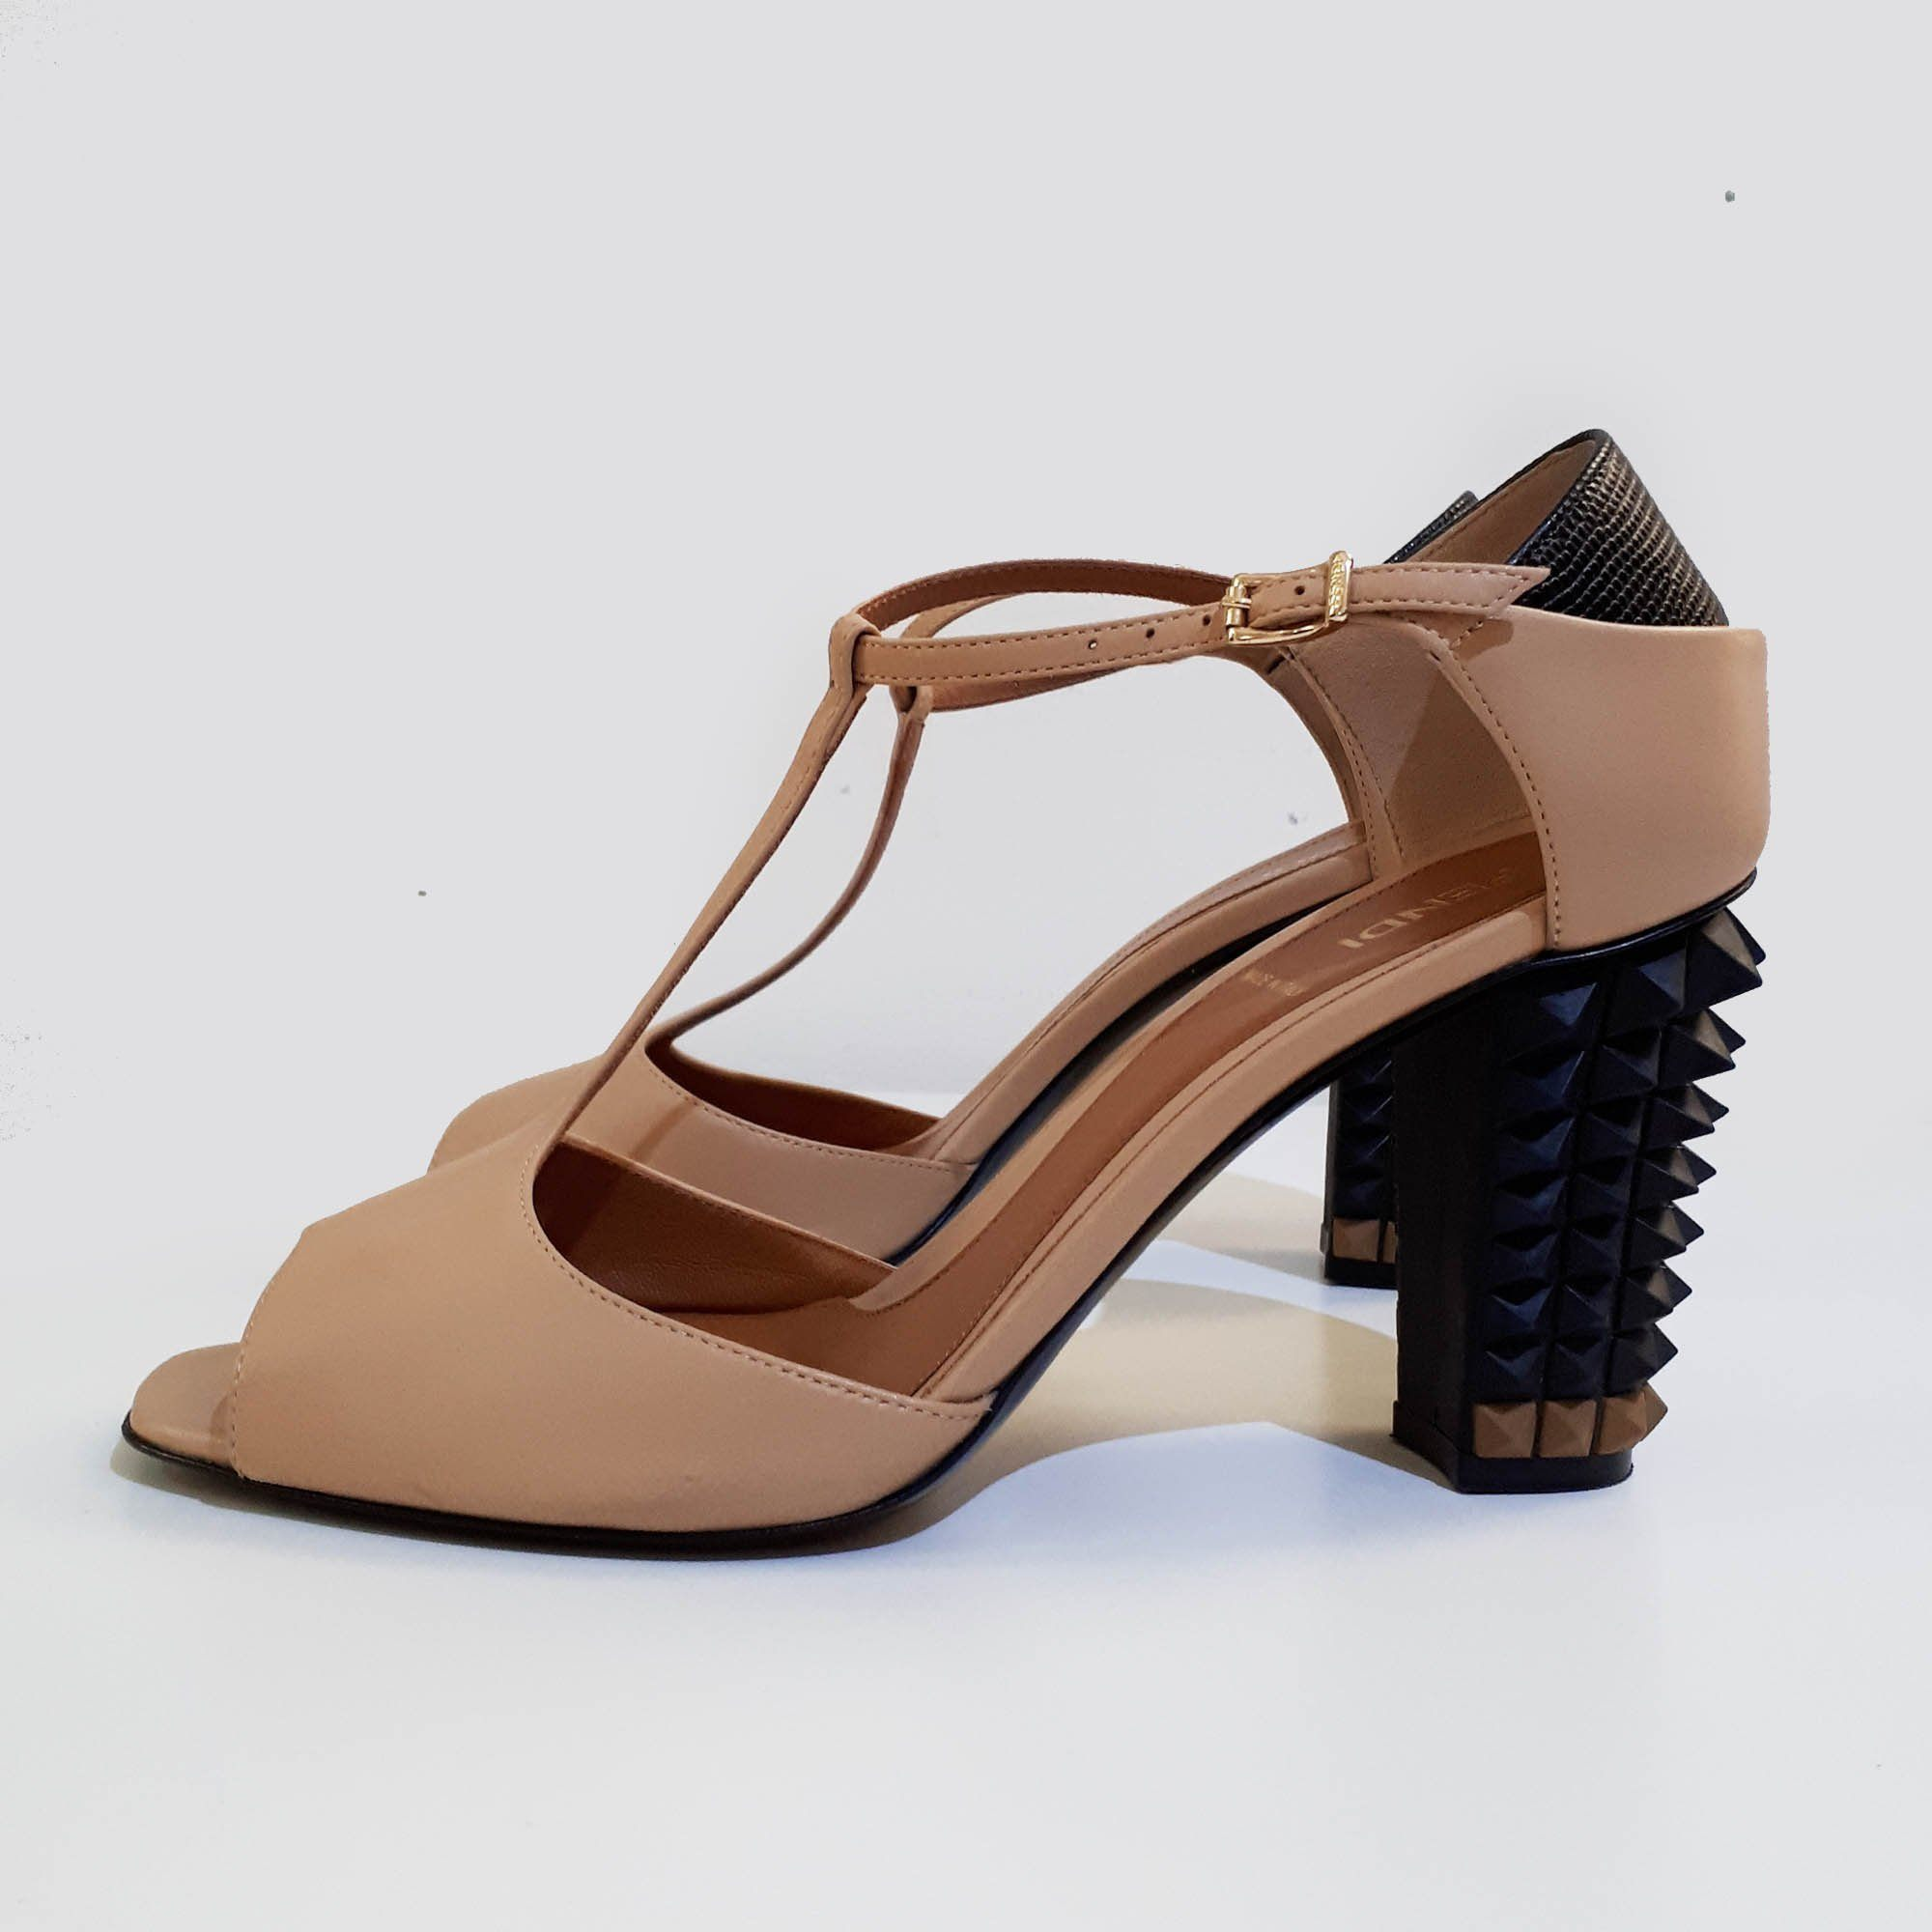 Fendi T-bar Studded Sandal Heels